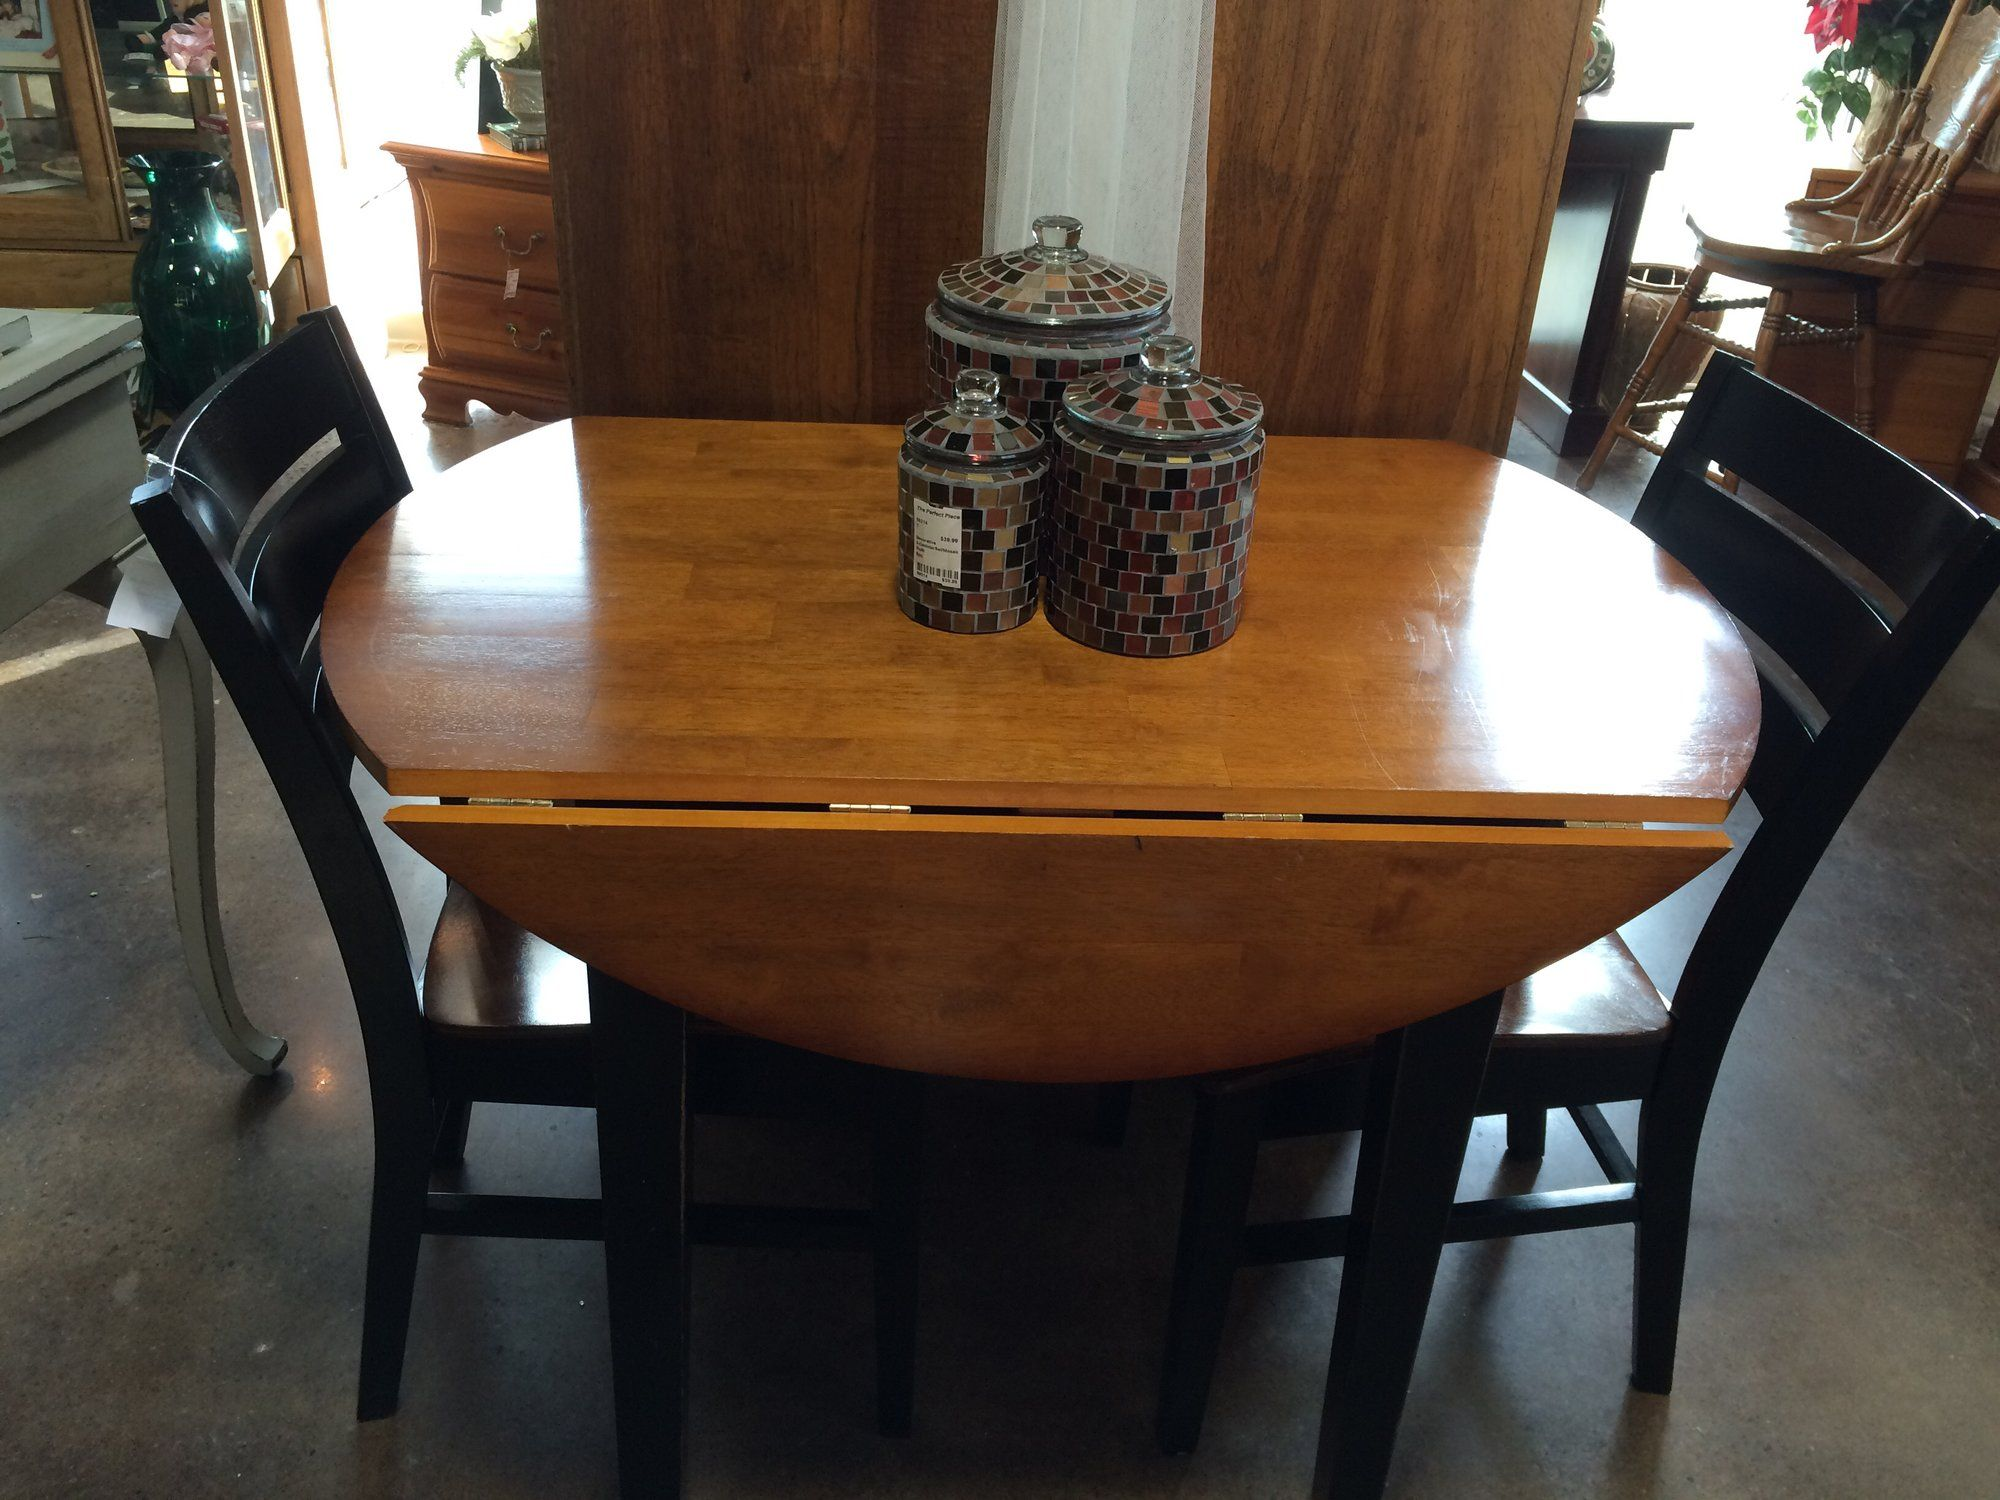 Dining Room Table With Drop Down Sides Alluring This Twotone Brown & Black Dropside Table & 2 Chairs Is Design Inspiration